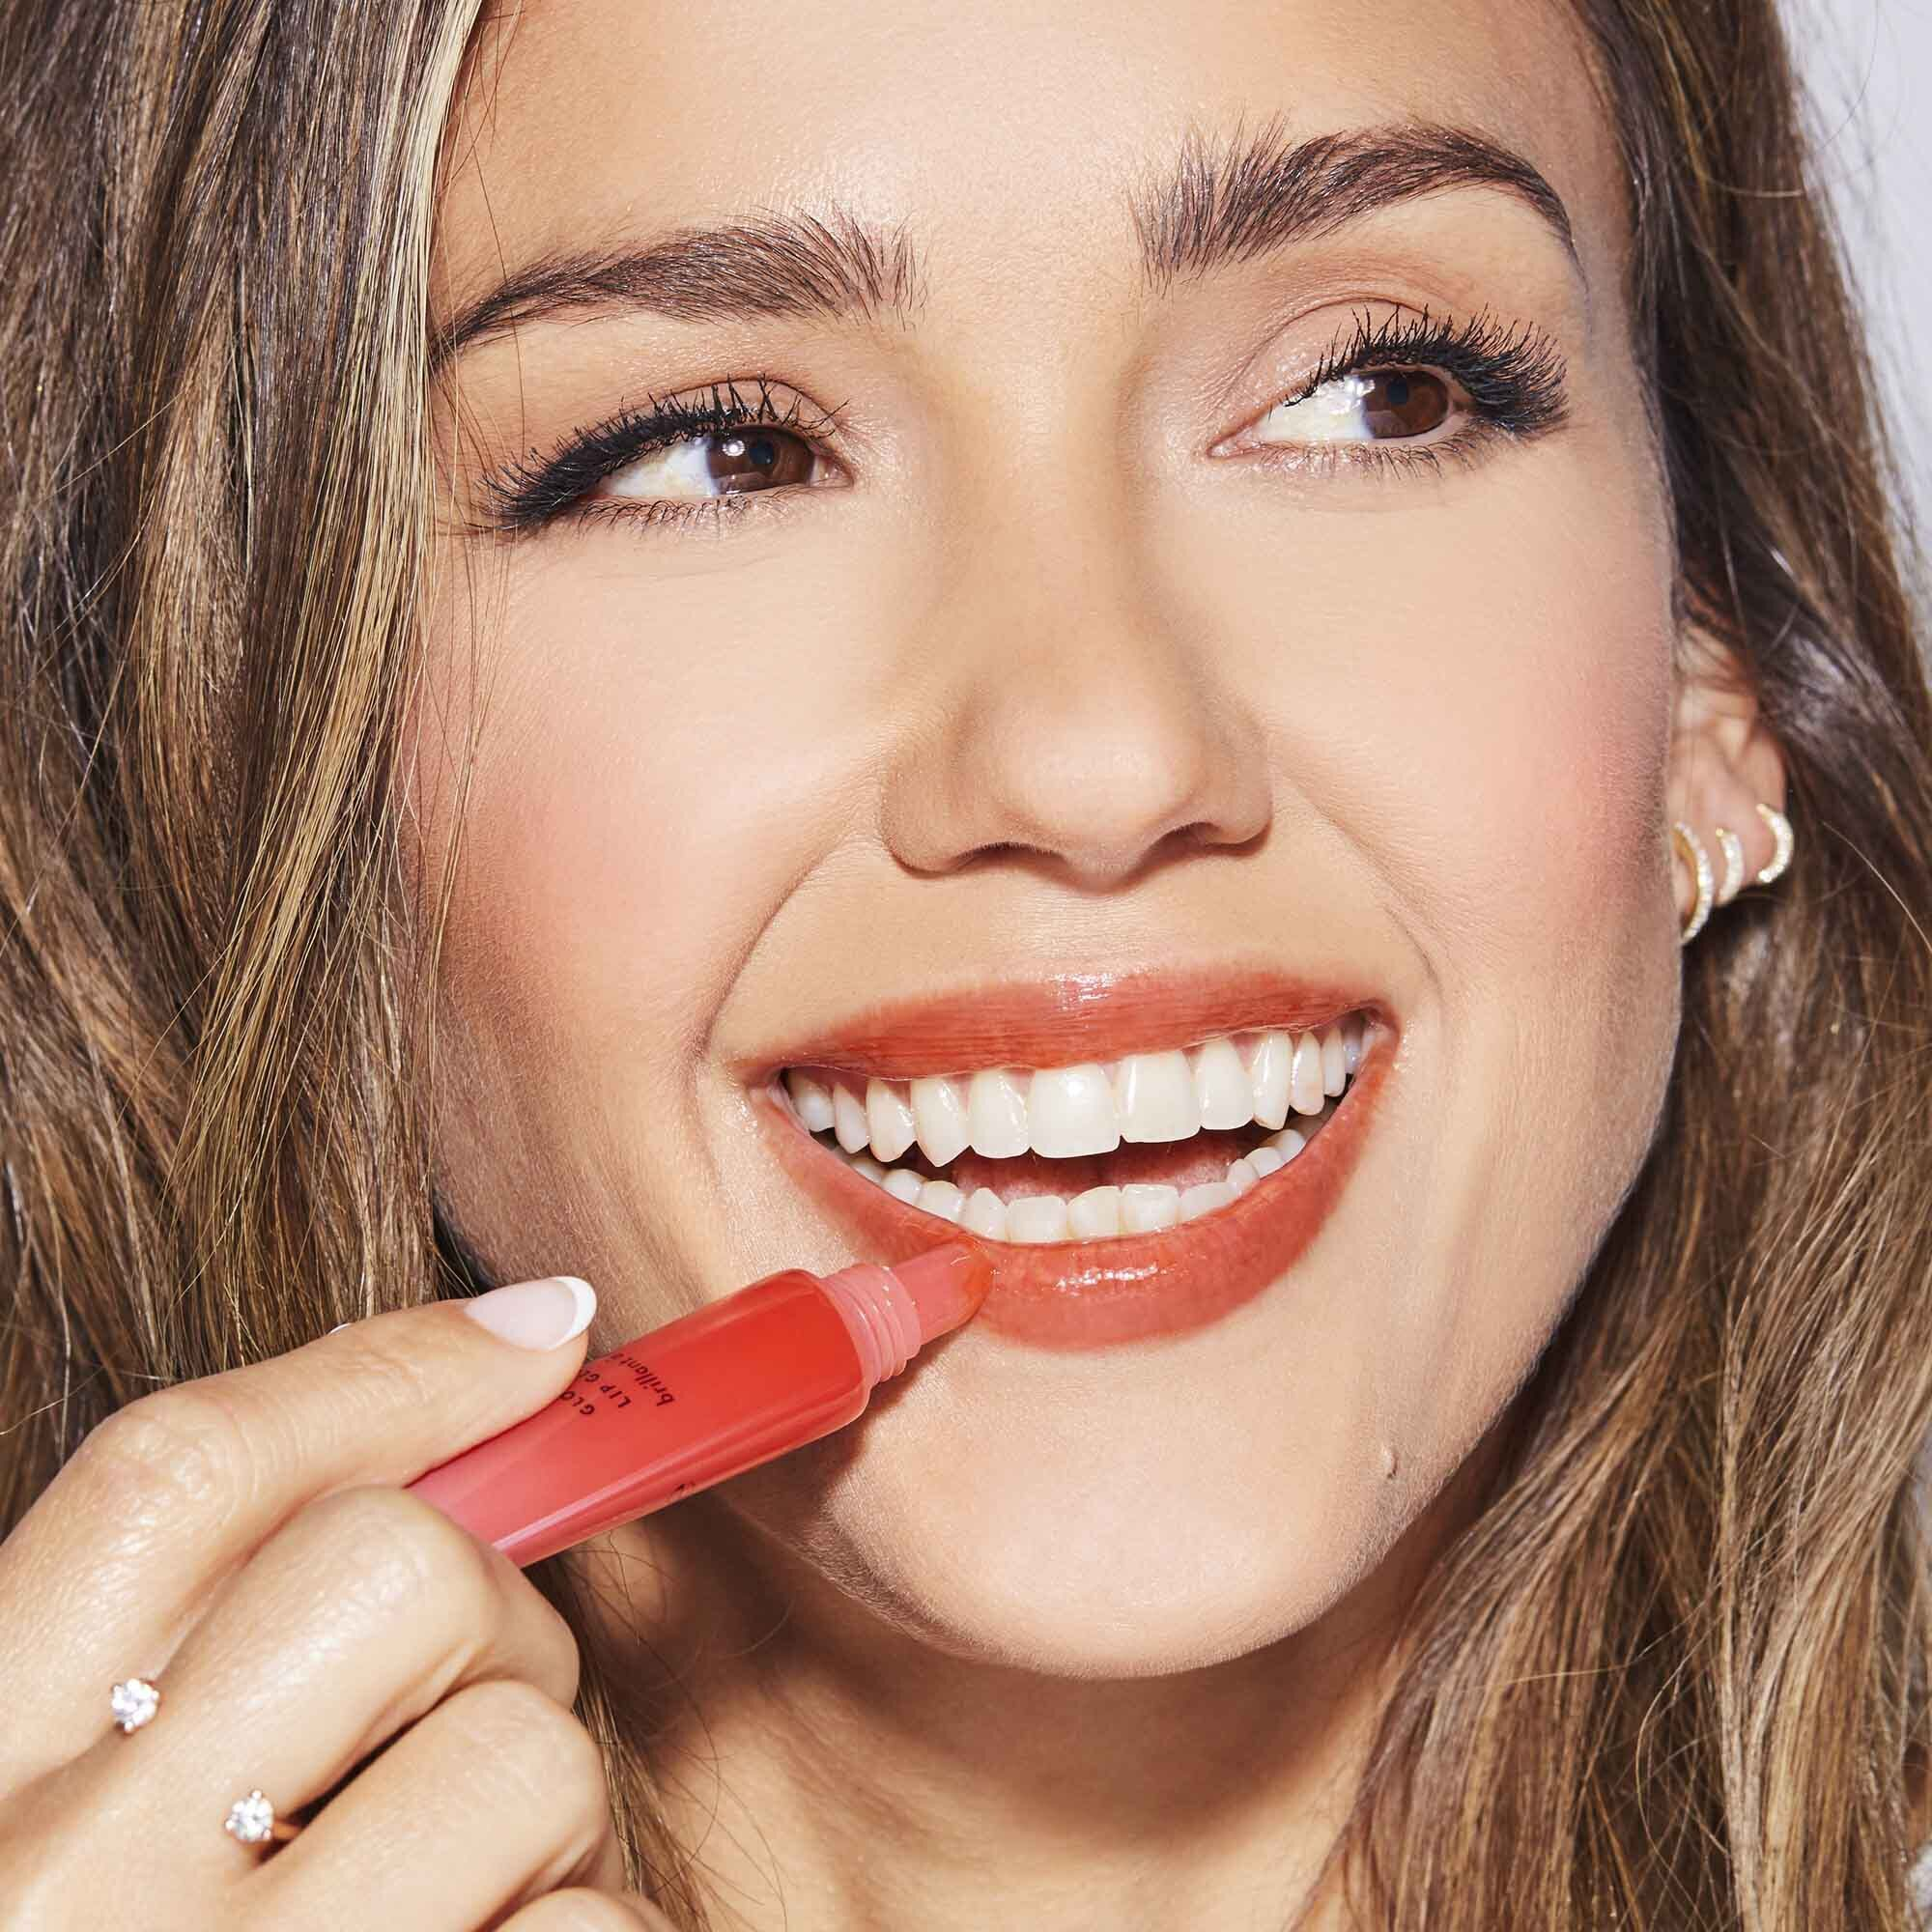 Jessica Alba using lip gloss